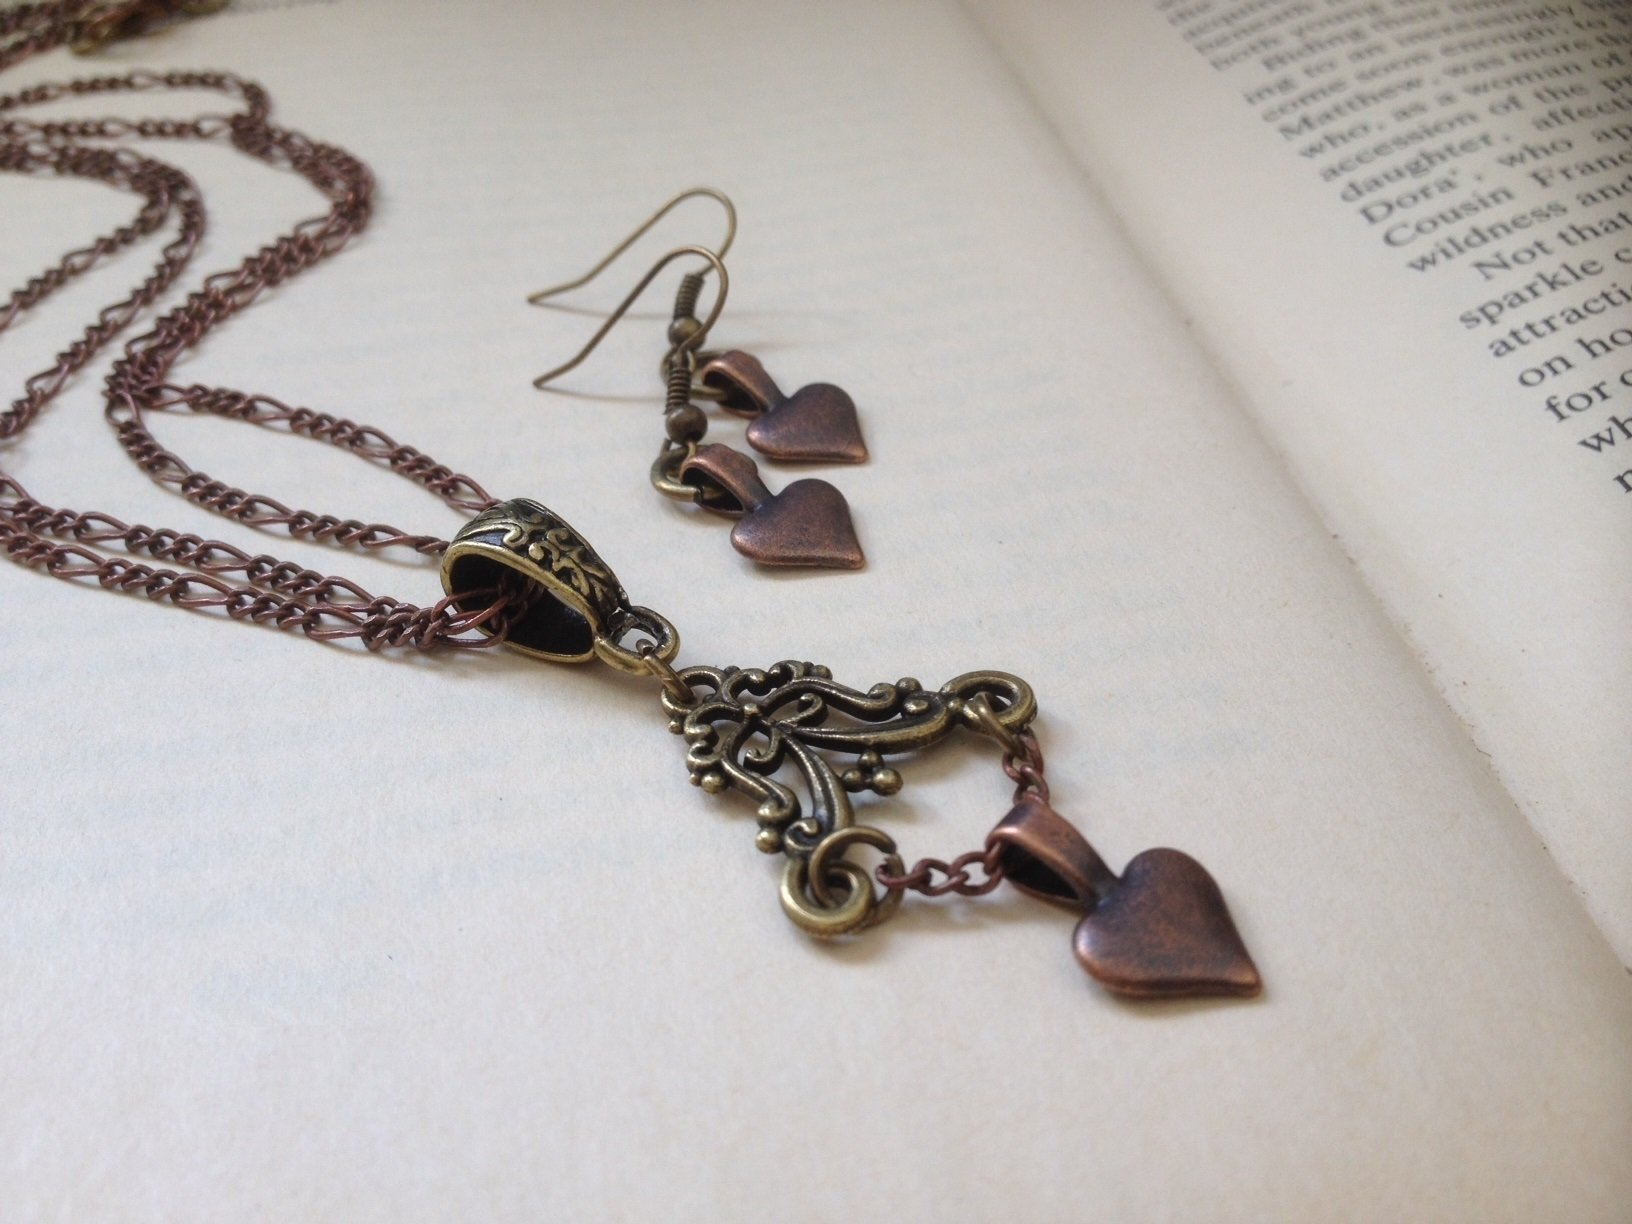 8th Wedding Anniversary Gift for Her - Vintage Heart Jewelry Set - Boxed & Gift Wrapped